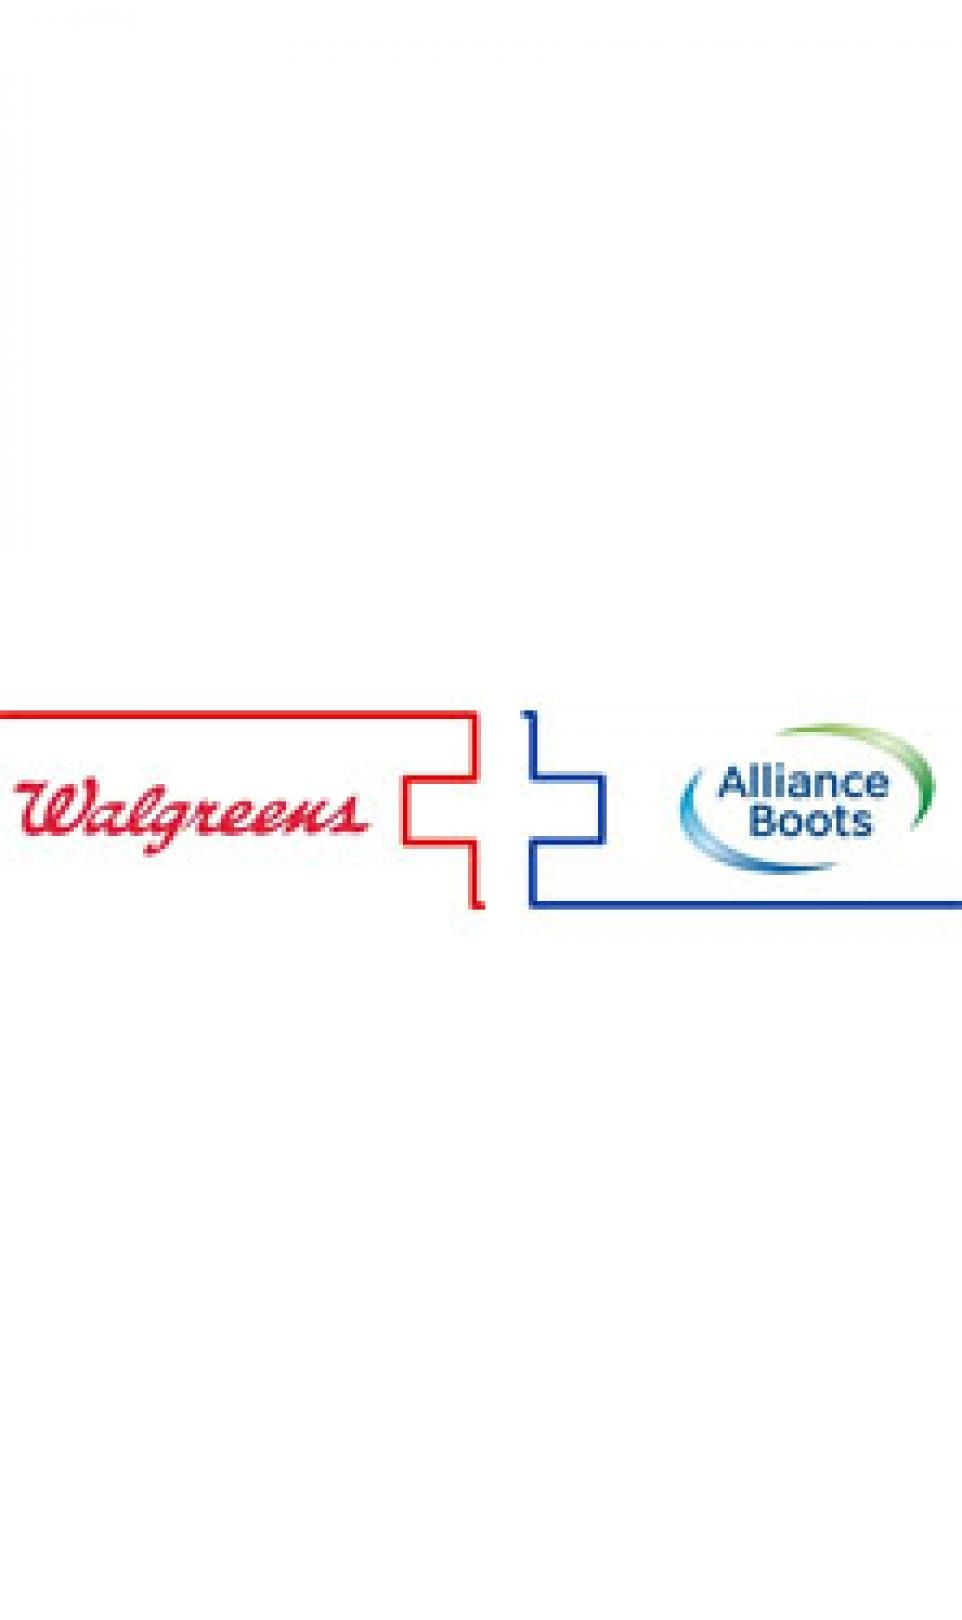 The red Walgreens logo and the blue Alliance Boots logo, pictured side-by-side on a white background